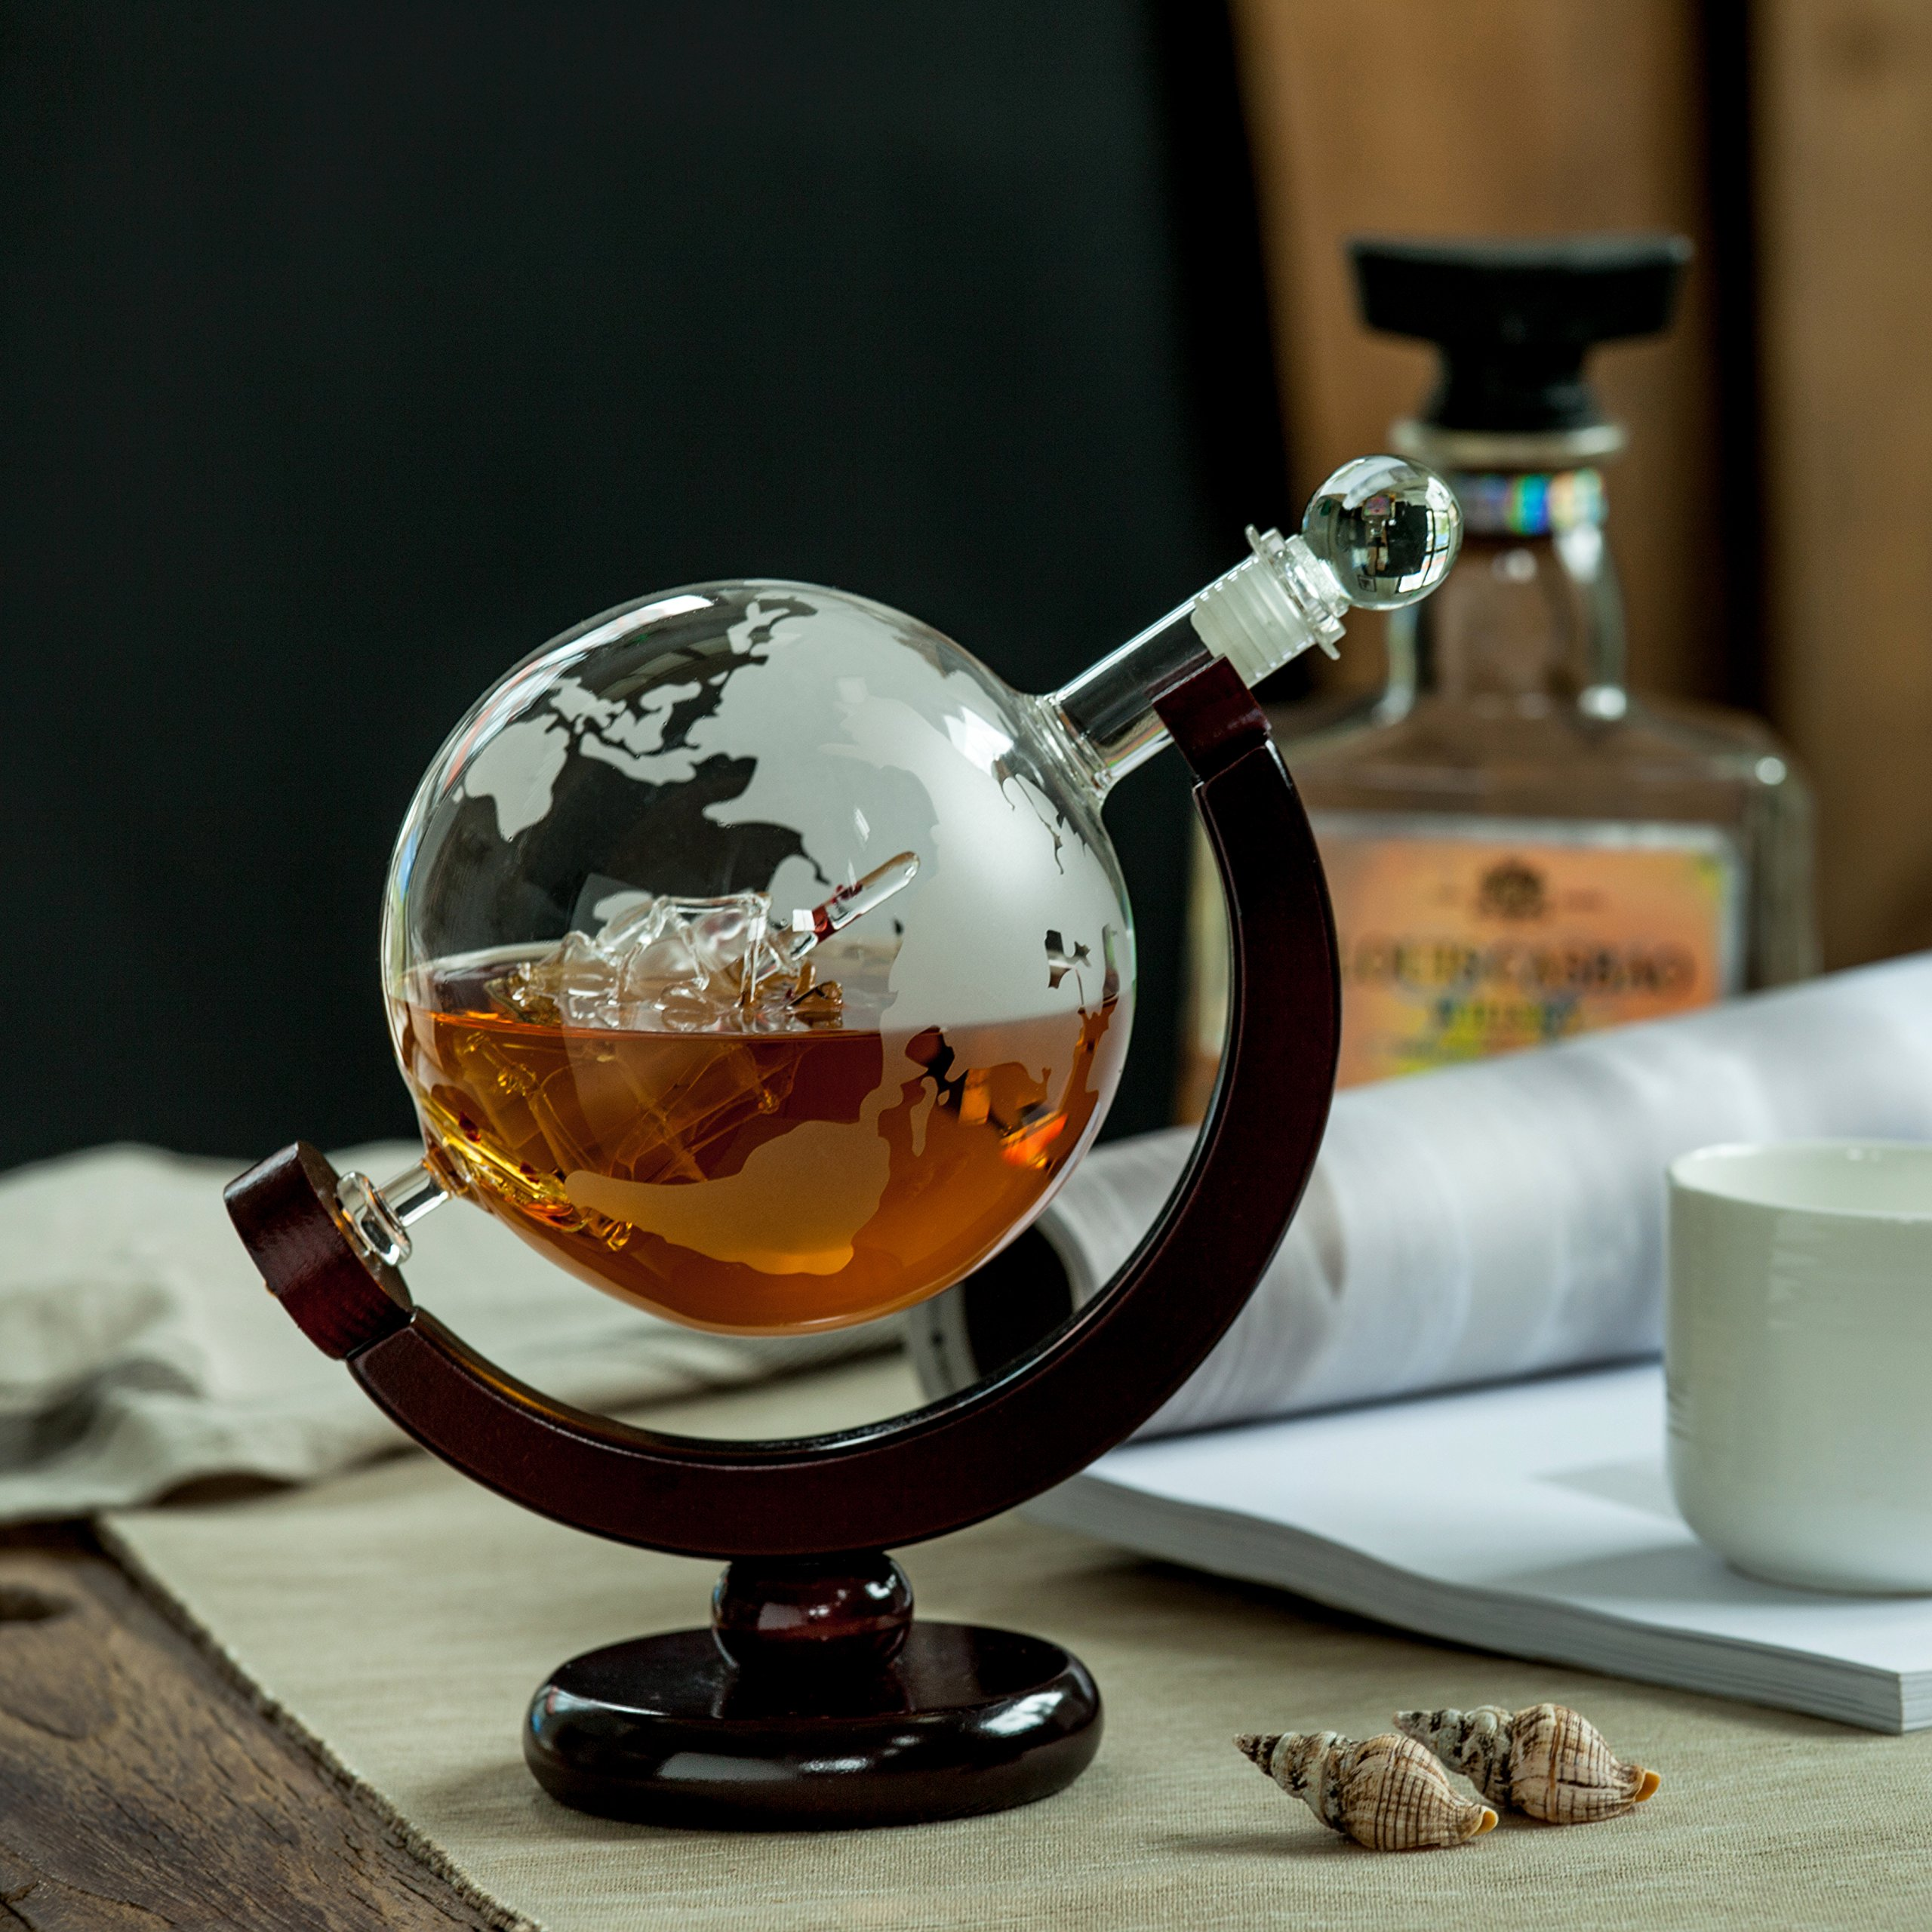 Whiskey Globe Decanter with Antique Dark Finished Wood Stand Bar Funnel 850ml Perfect Gift Set Scotch Liquor Bourbon Wine Vodka by ERAVINO (Image #6)